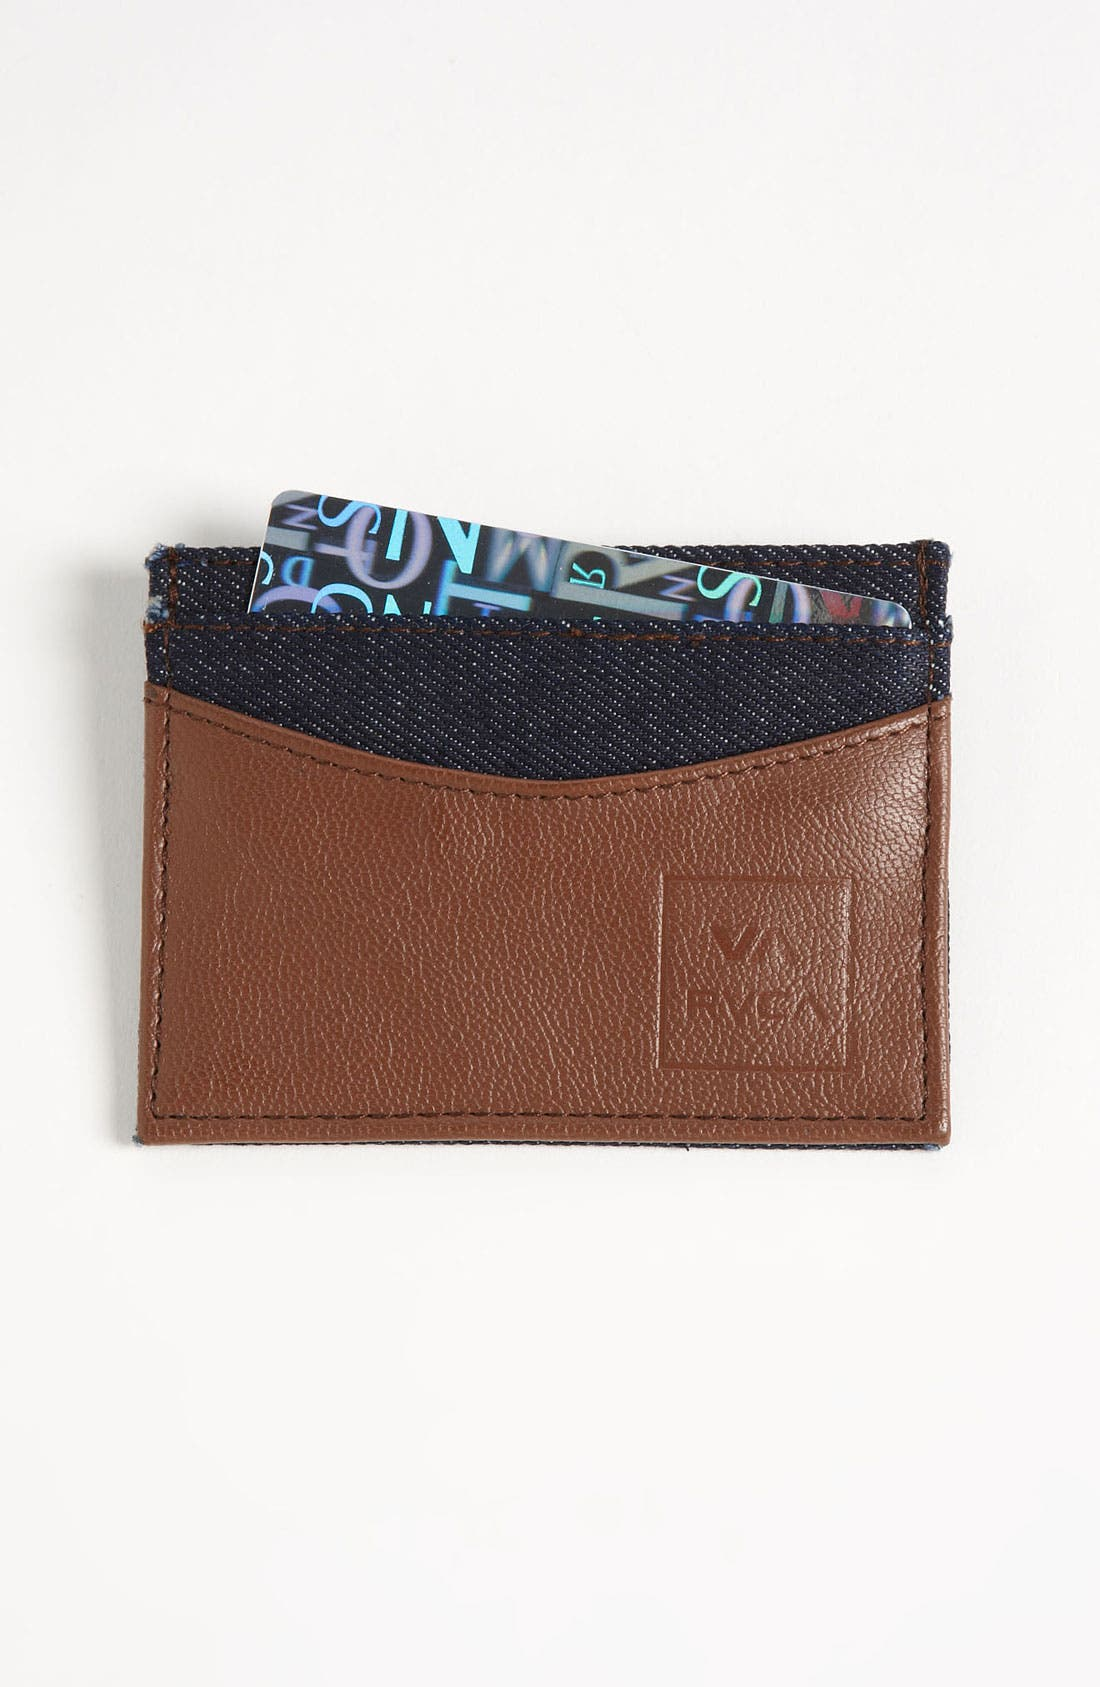 Main Image - RVCA 'Cuban' Card Case